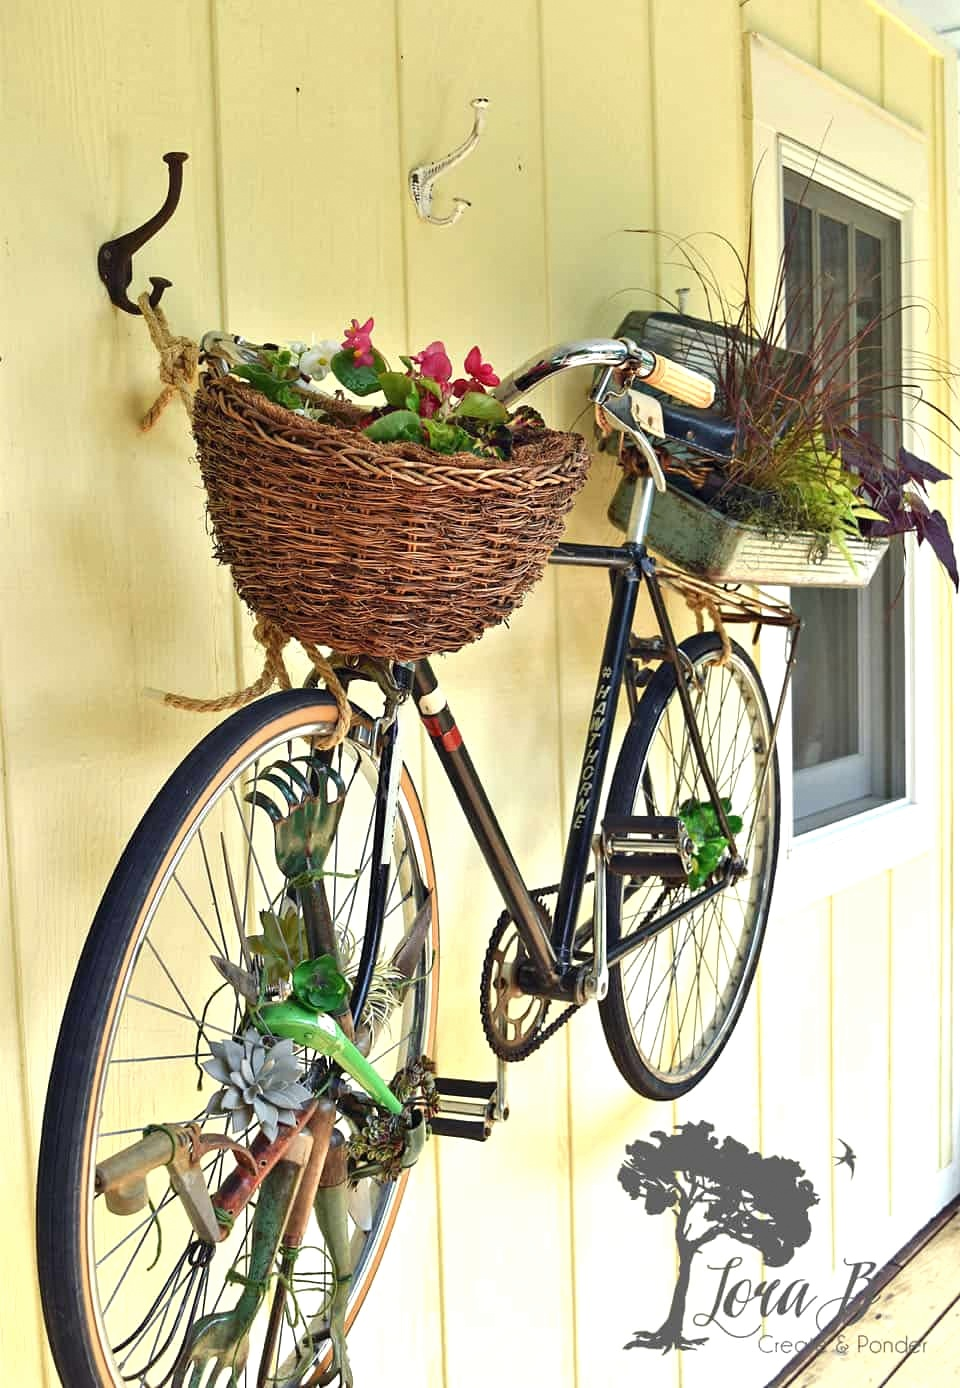 Vintage bike garden art by Lora By by Lora B, featured on Funky Junk Interiors